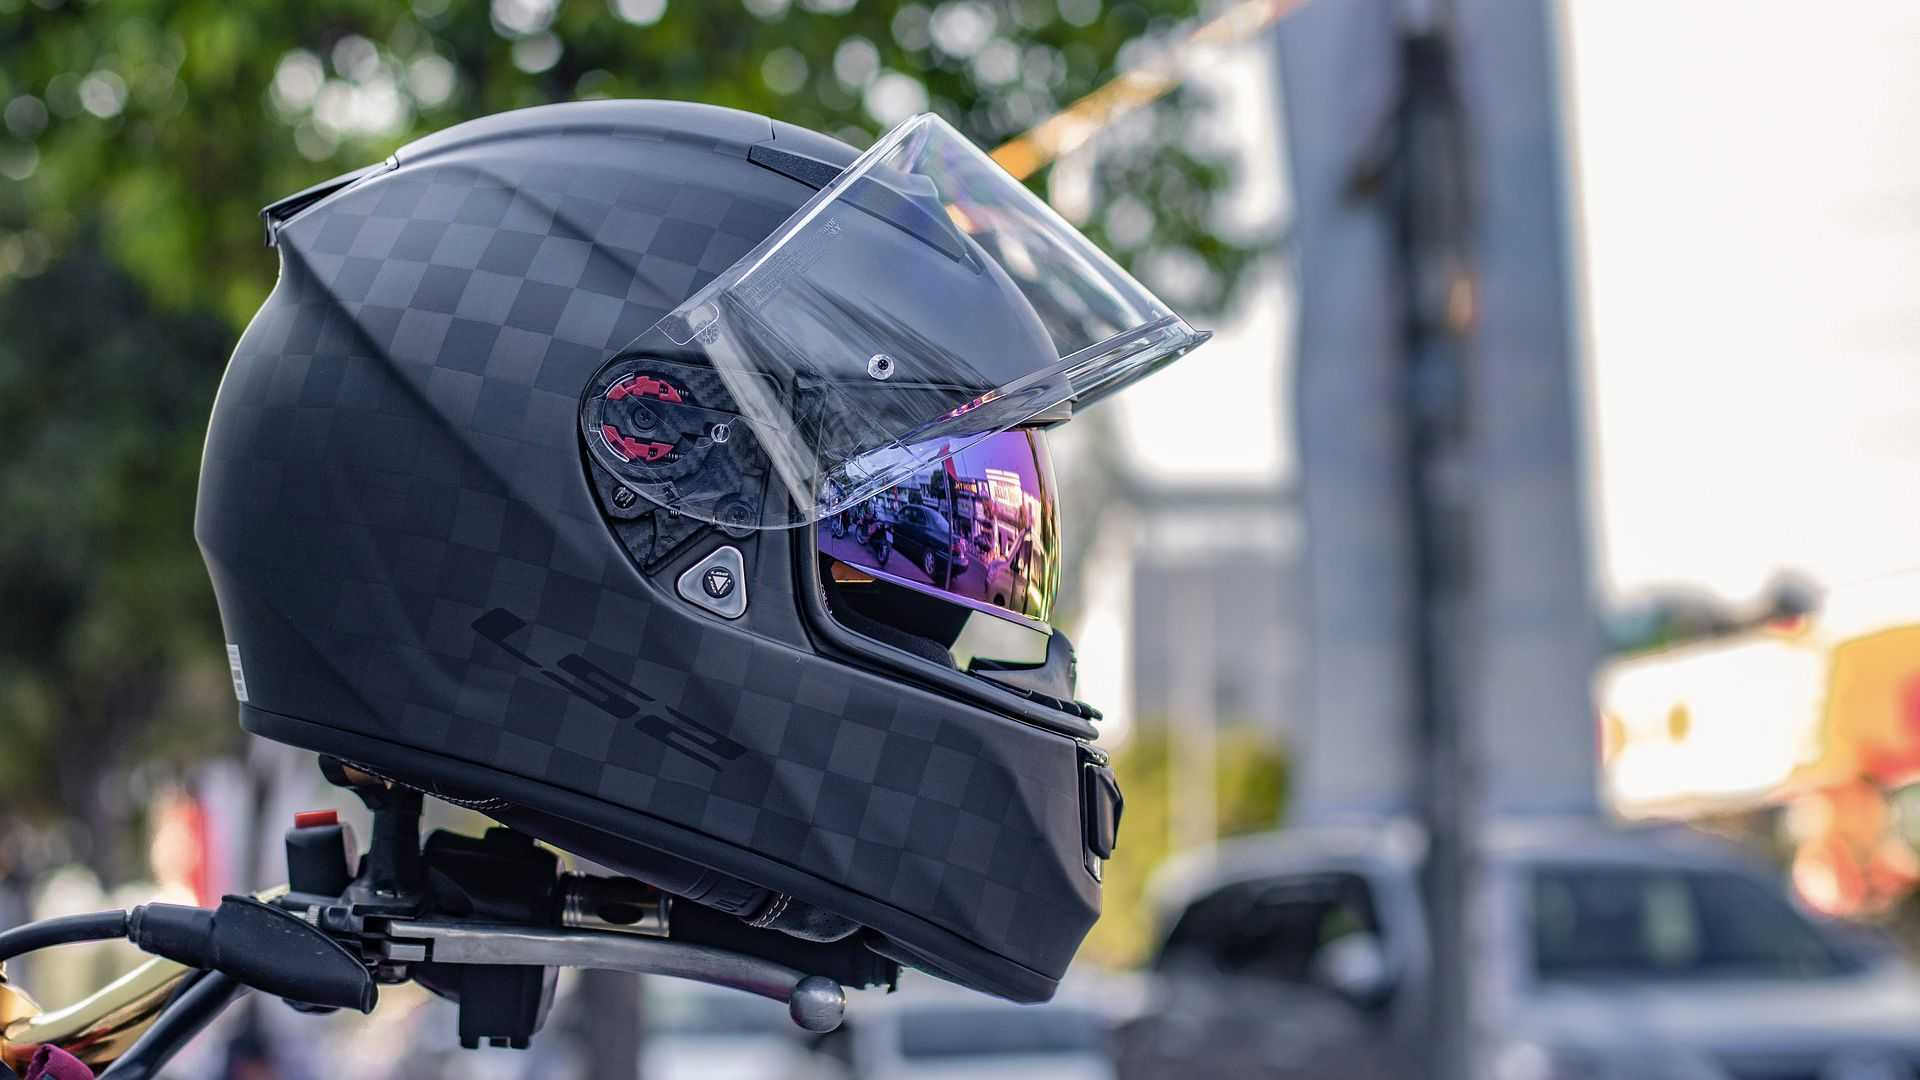 The 6 Motorcycle Helmets Types, How They Fit Your Riding Style